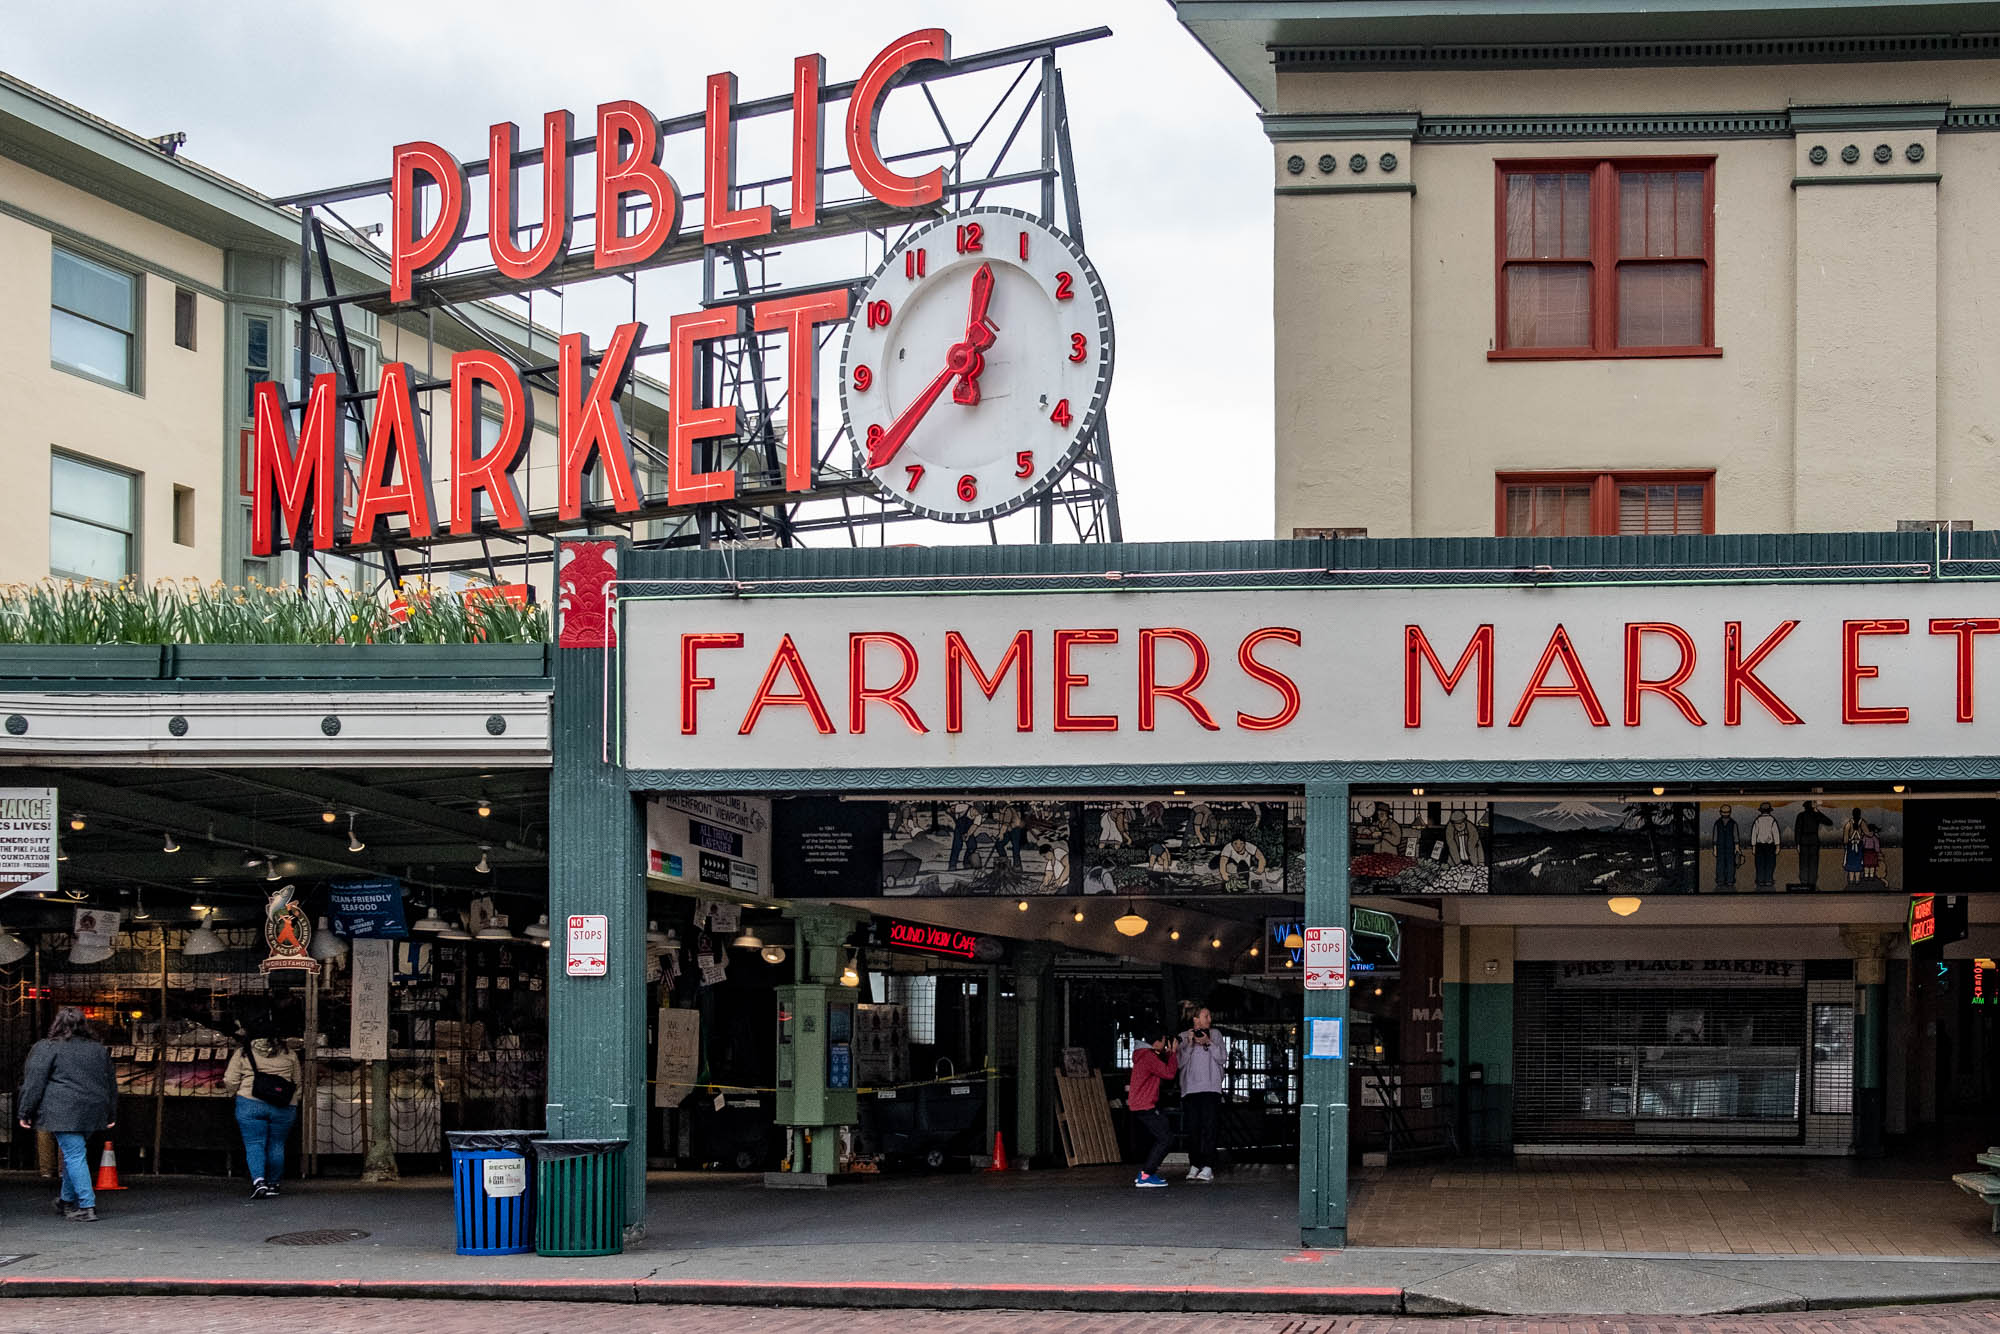 Pike Place Market on a cloudy day, with a view of the iconic sign and clock